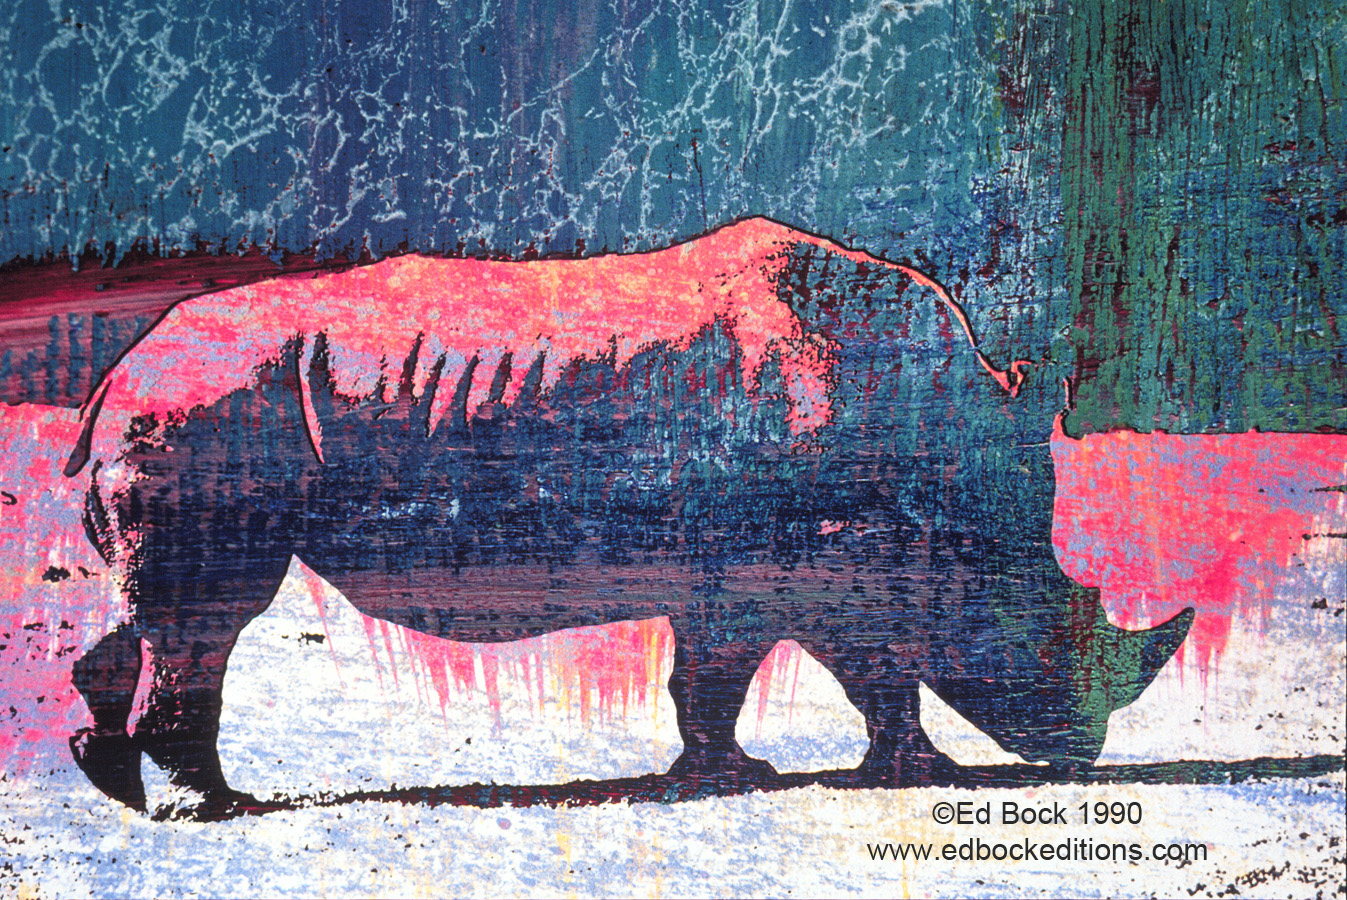 Rhino, Rhinoceros, Blue, animal, green, red, Mixed media, art, acrylic, watercolor, fine art, prints, artwork, collage, poster, photo, canvas, giclee, painting, contemporary, modern, abstract, colorful, art prints from Ed Bock, EdBockEditions